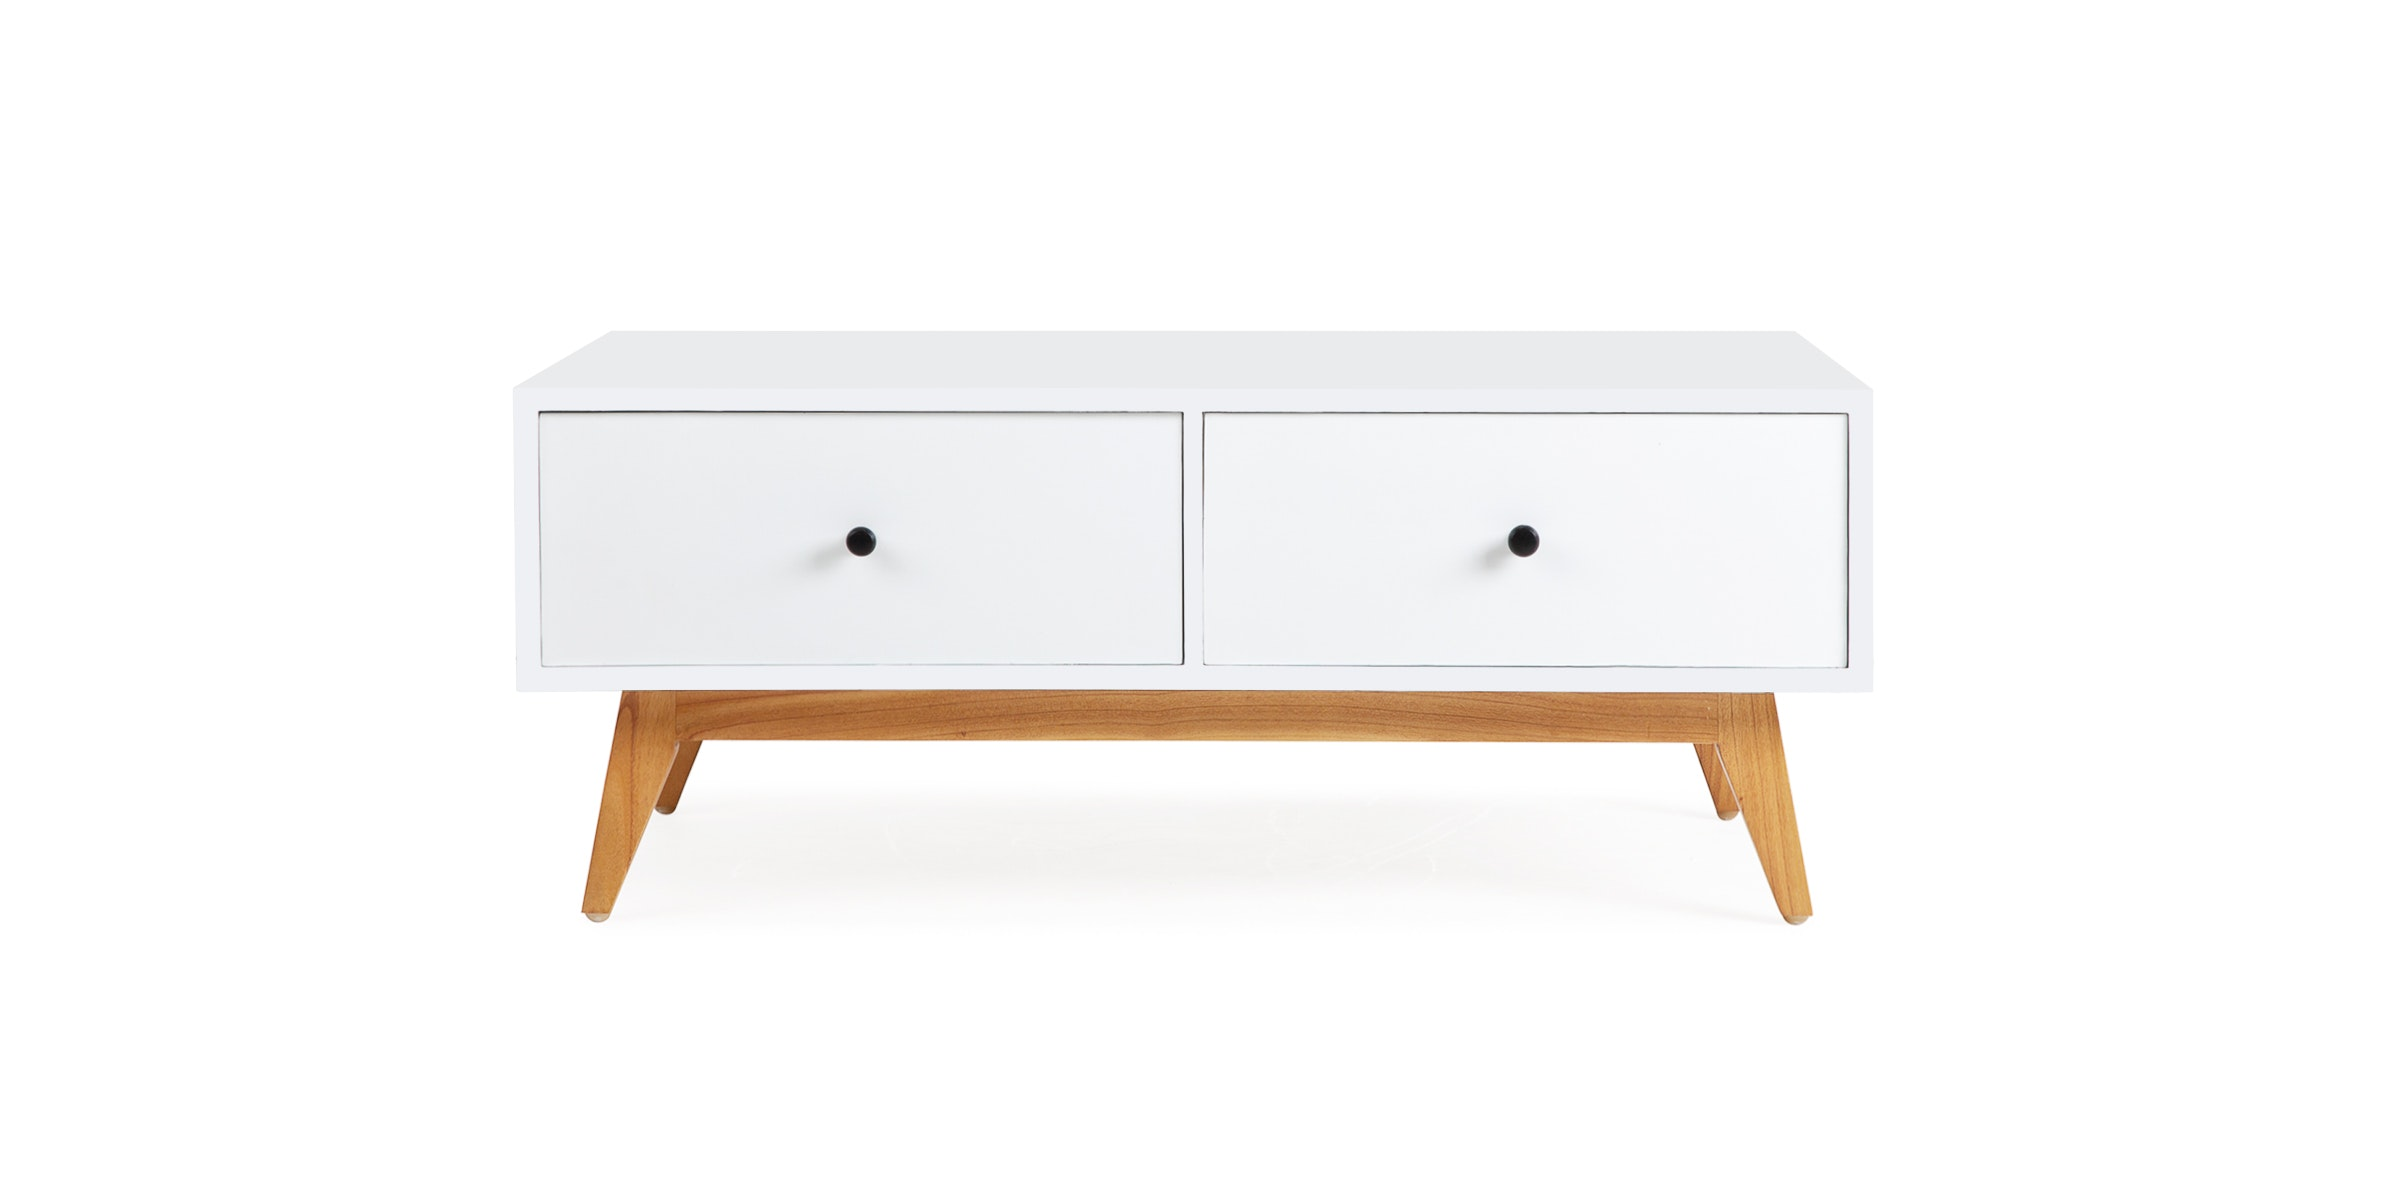 Haruki Ito Coffee Table with two-sided drawers